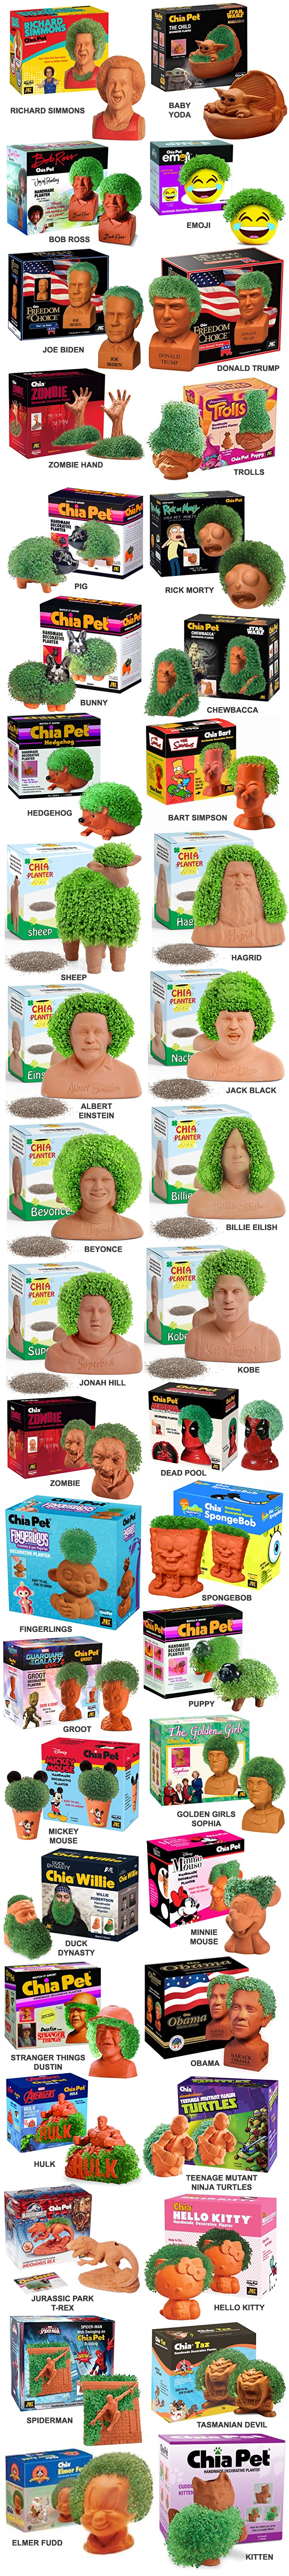 THE BEST FUNNIEST DUMBEST CHIA PETS